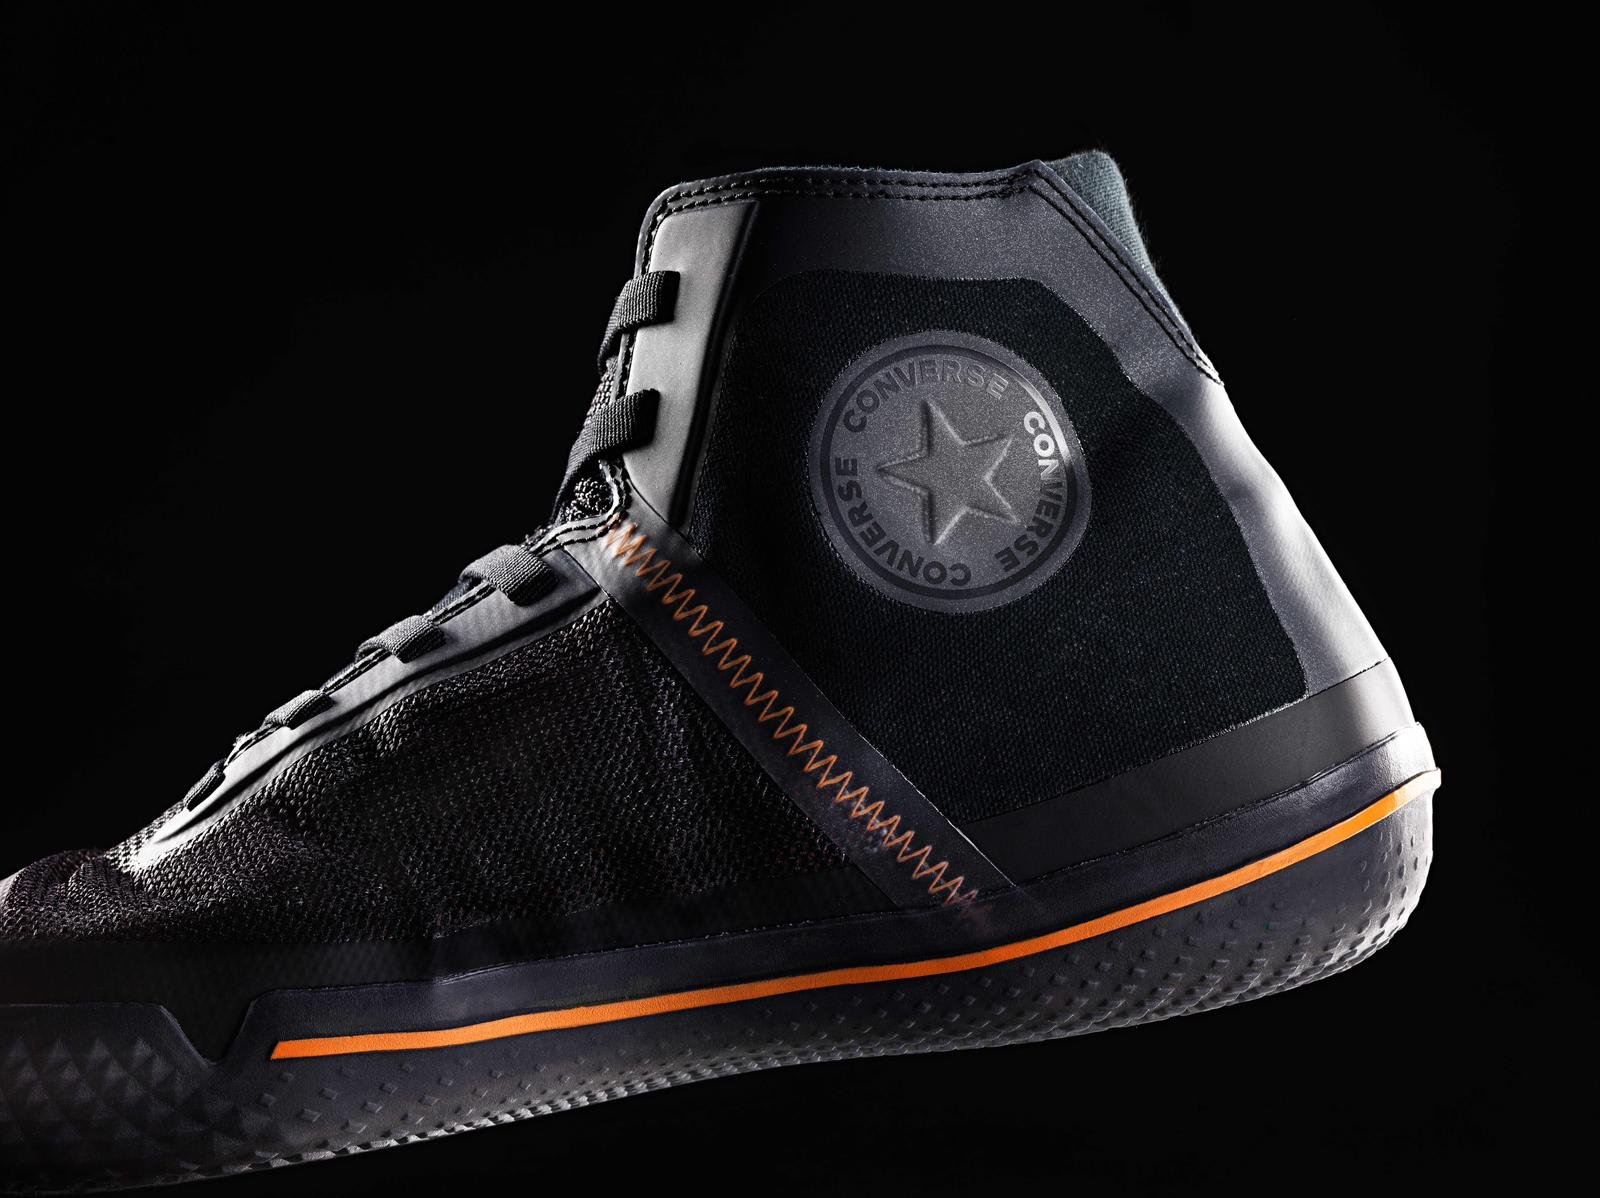 Converse All Star Pro BB Release Date | Sole Collector